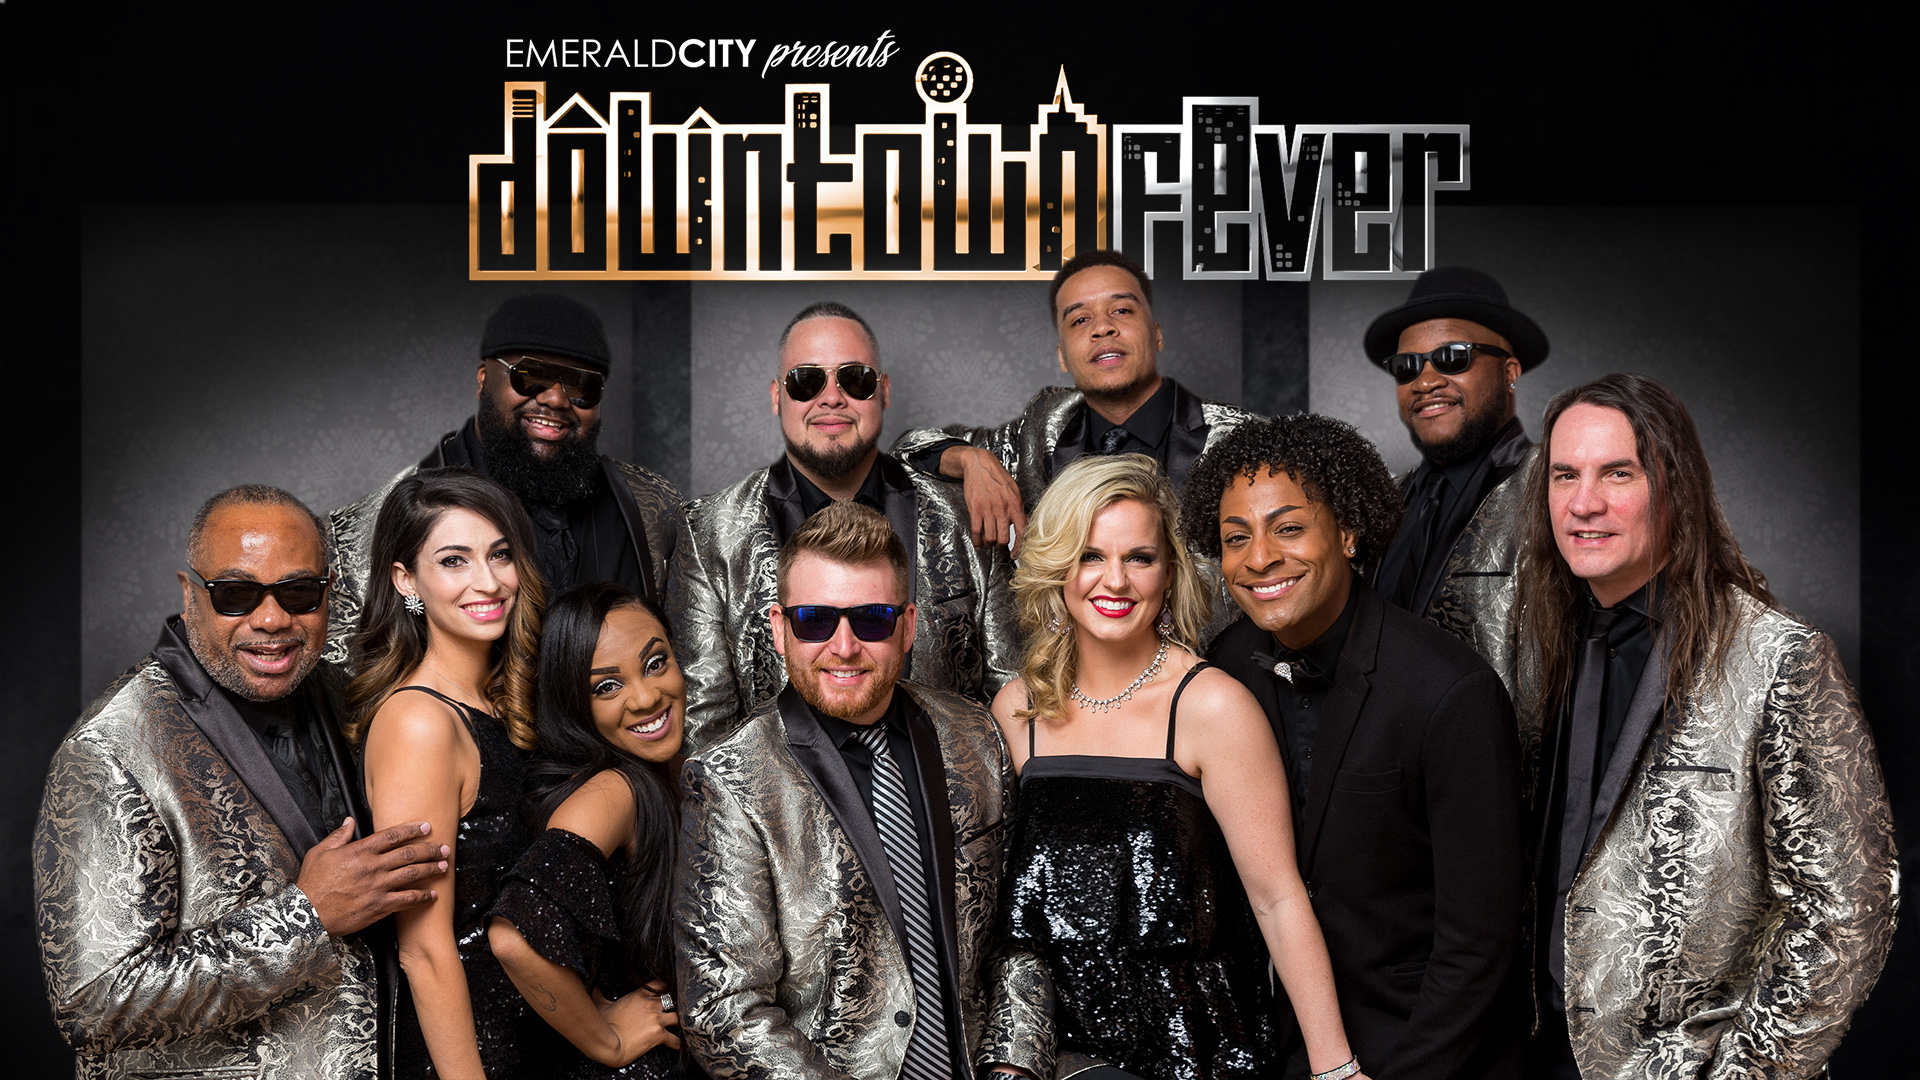 Downtown Fever Band - Dallas TX - one of the best party bands for weddings and events